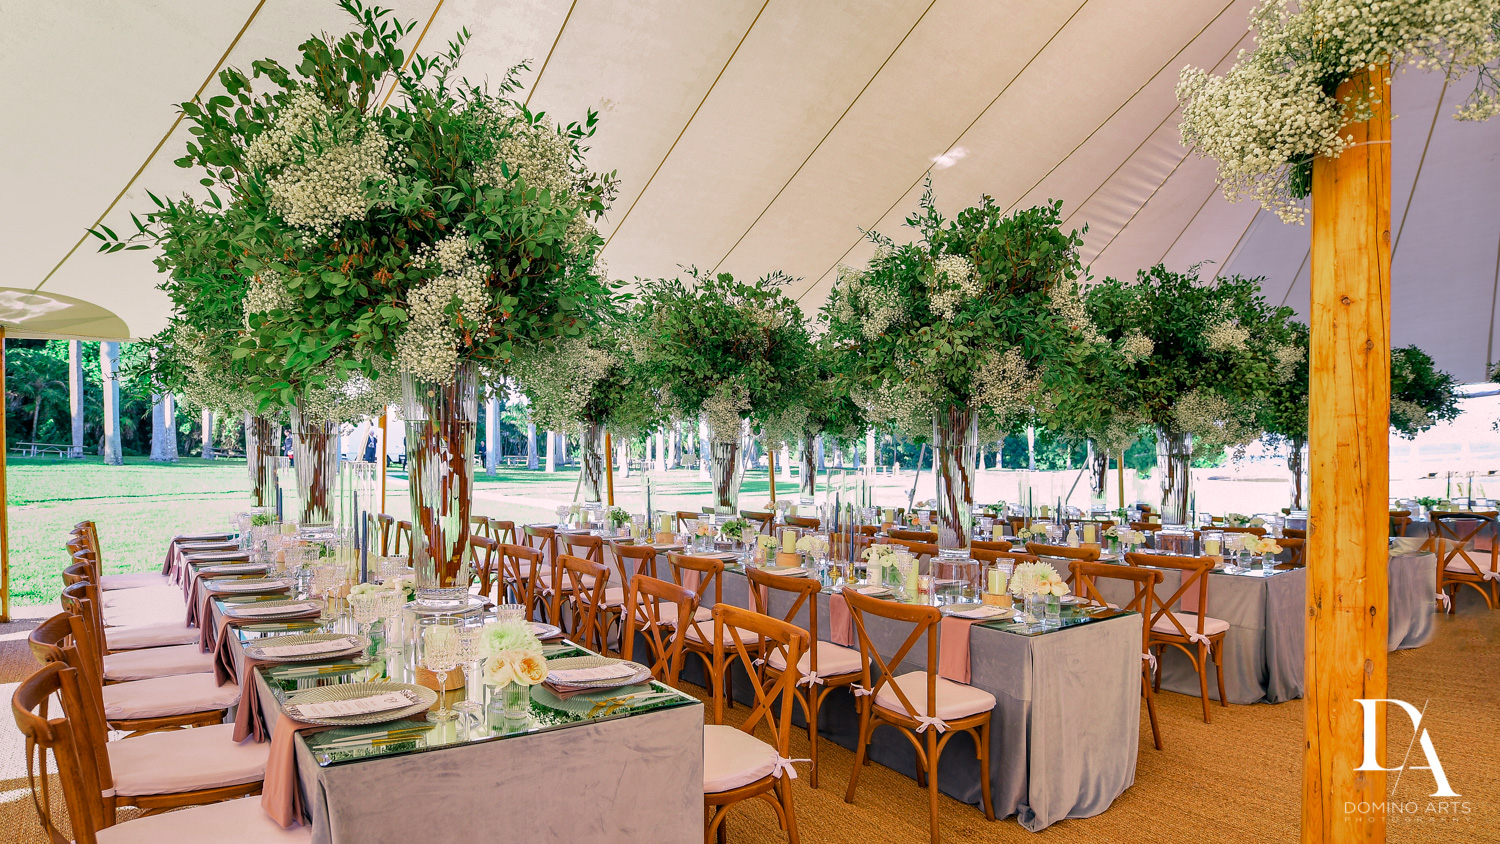 best table settings at Traditional Jewish Wedding at Deering Estate Miami by Domino Arts Photography